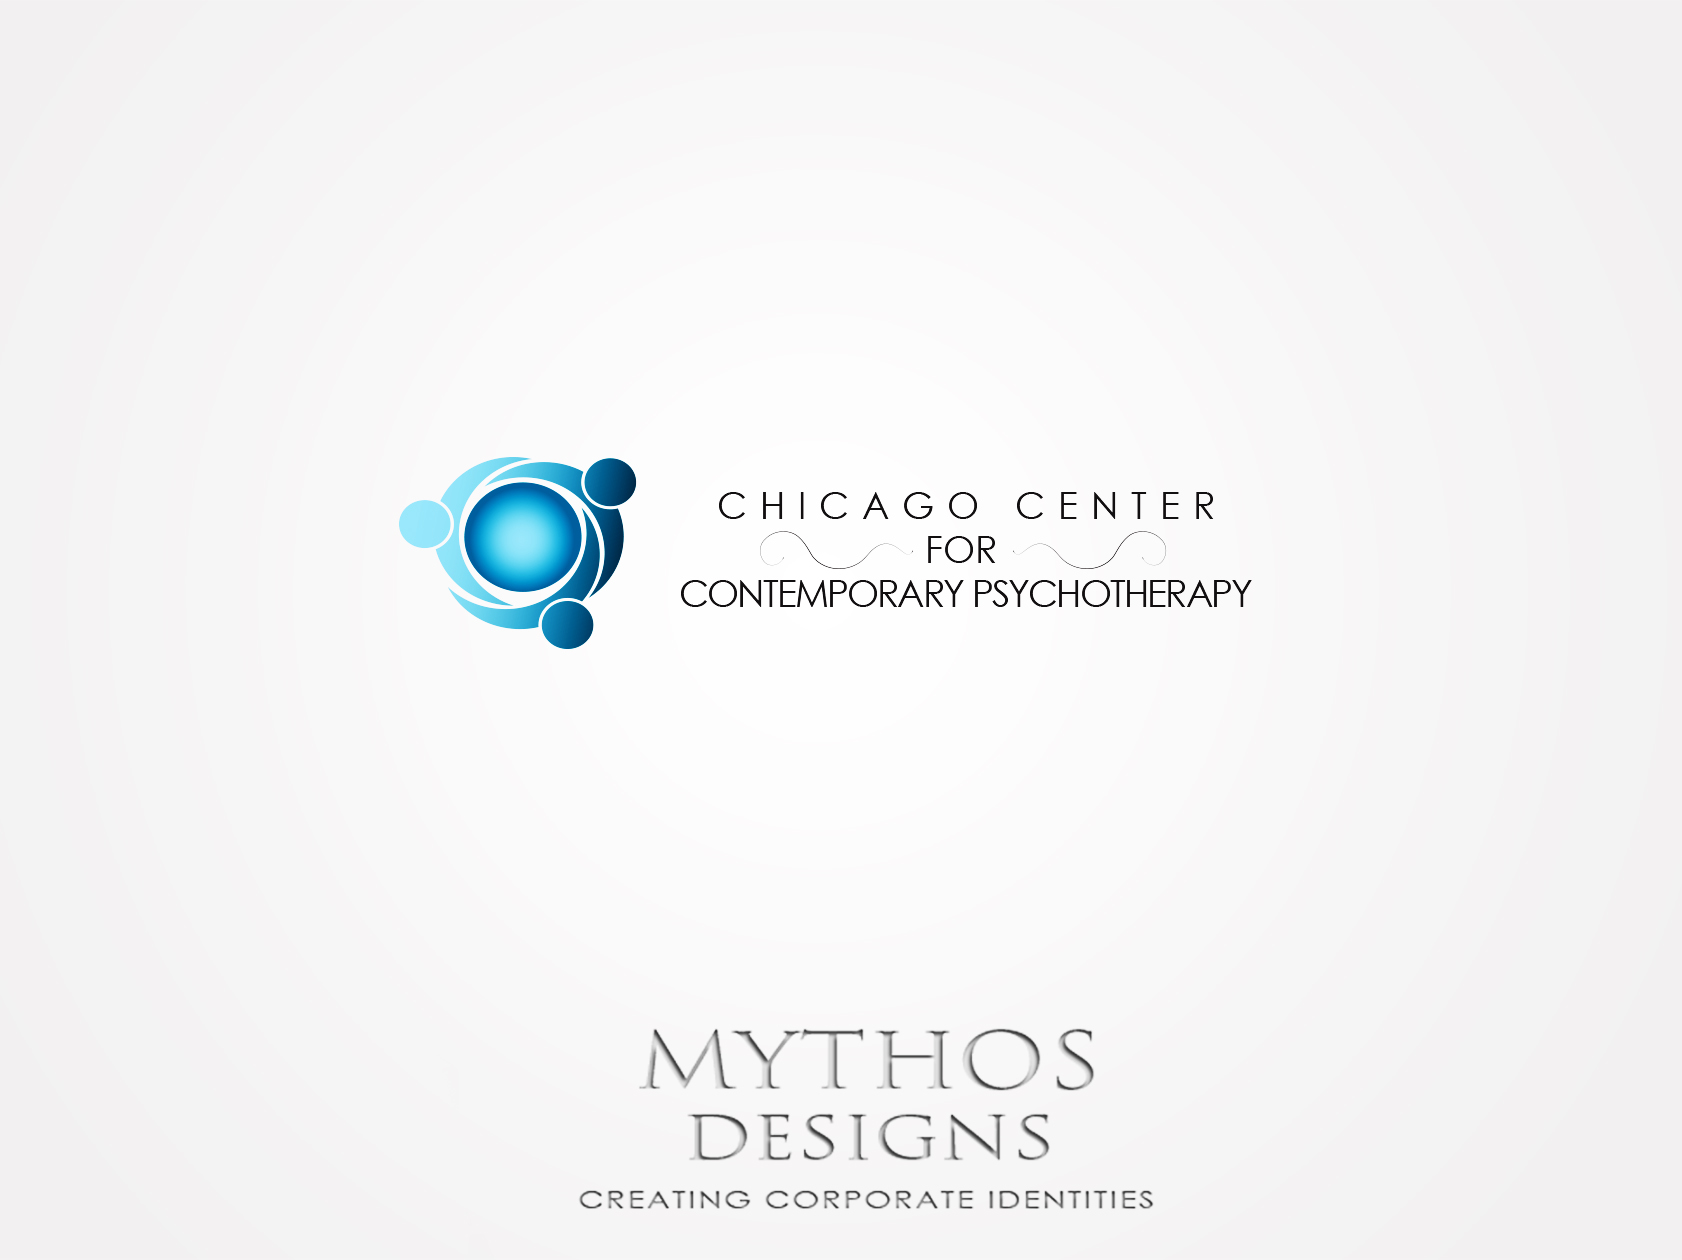 Logo Design by Mythos Designs - Entry No. 47 in the Logo Design Contest Inspiring Logo Design for Chicago Center for Contemporary Psychotherapy.